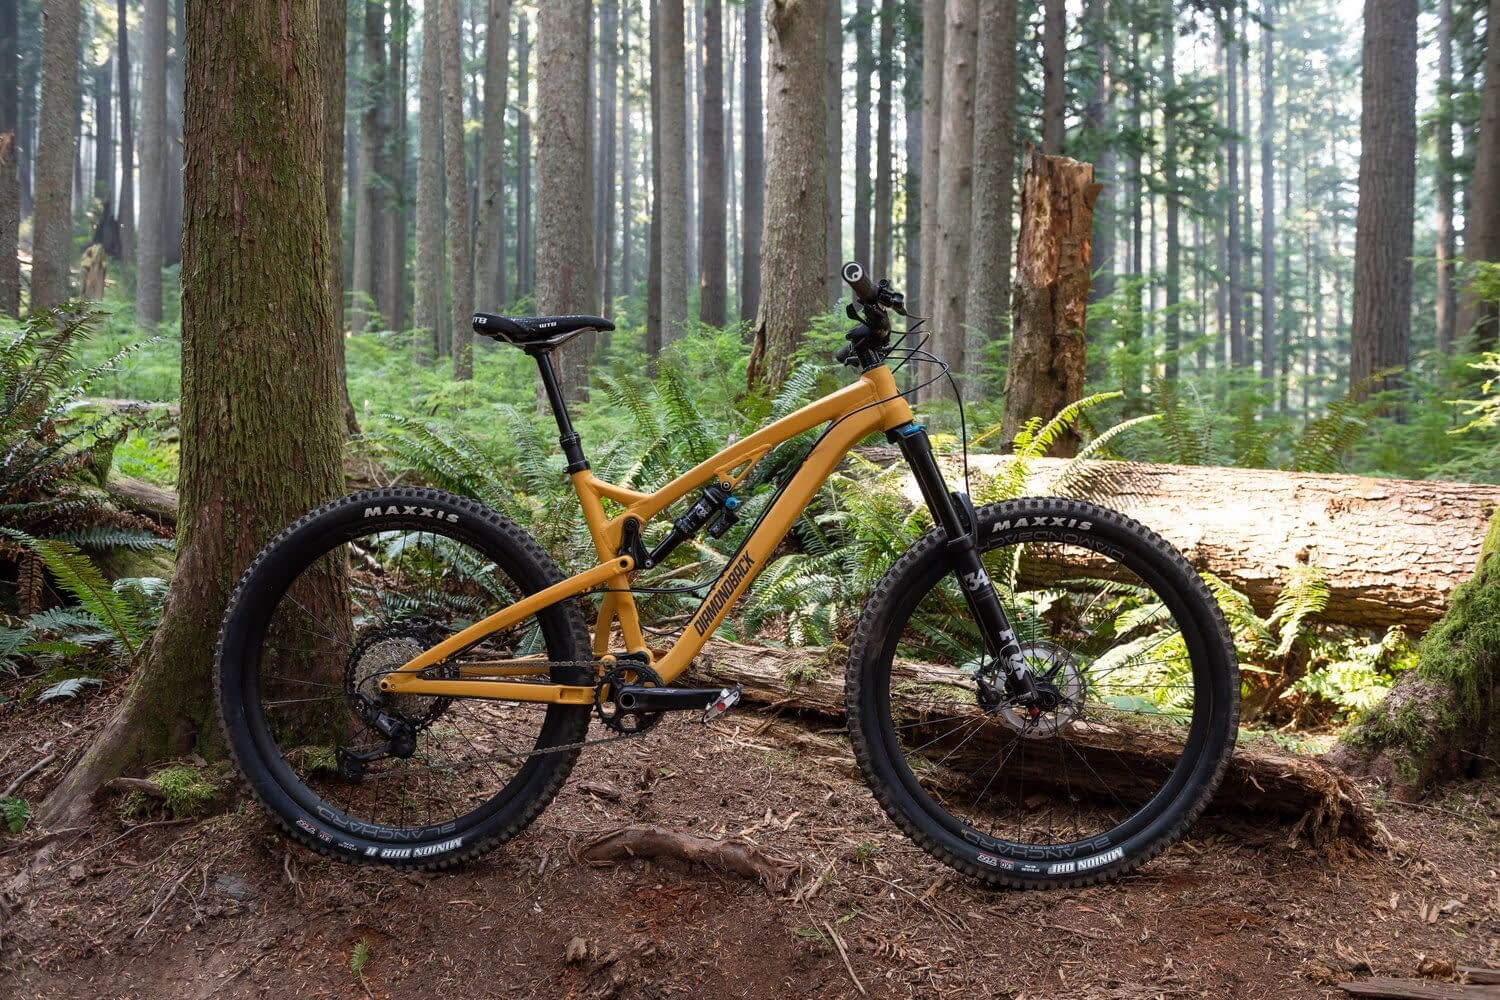 a yellow mountain bike in a forest